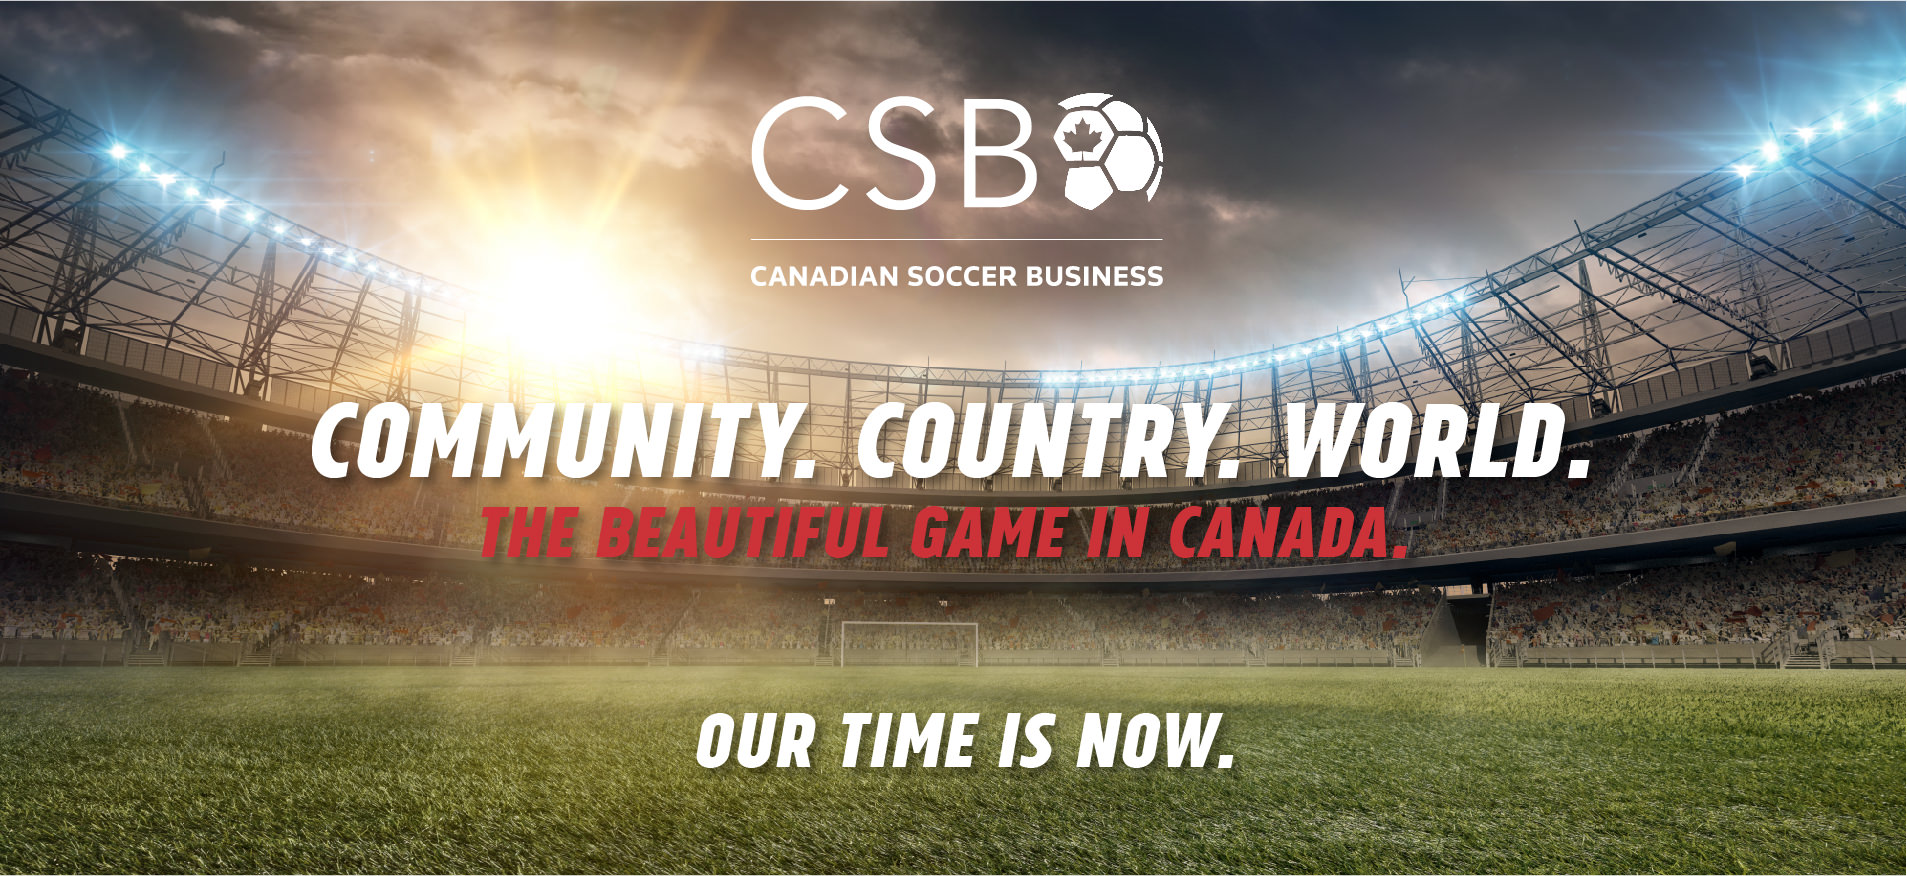 Canadian Soccer Business Looks To Build On Momentum And Transform